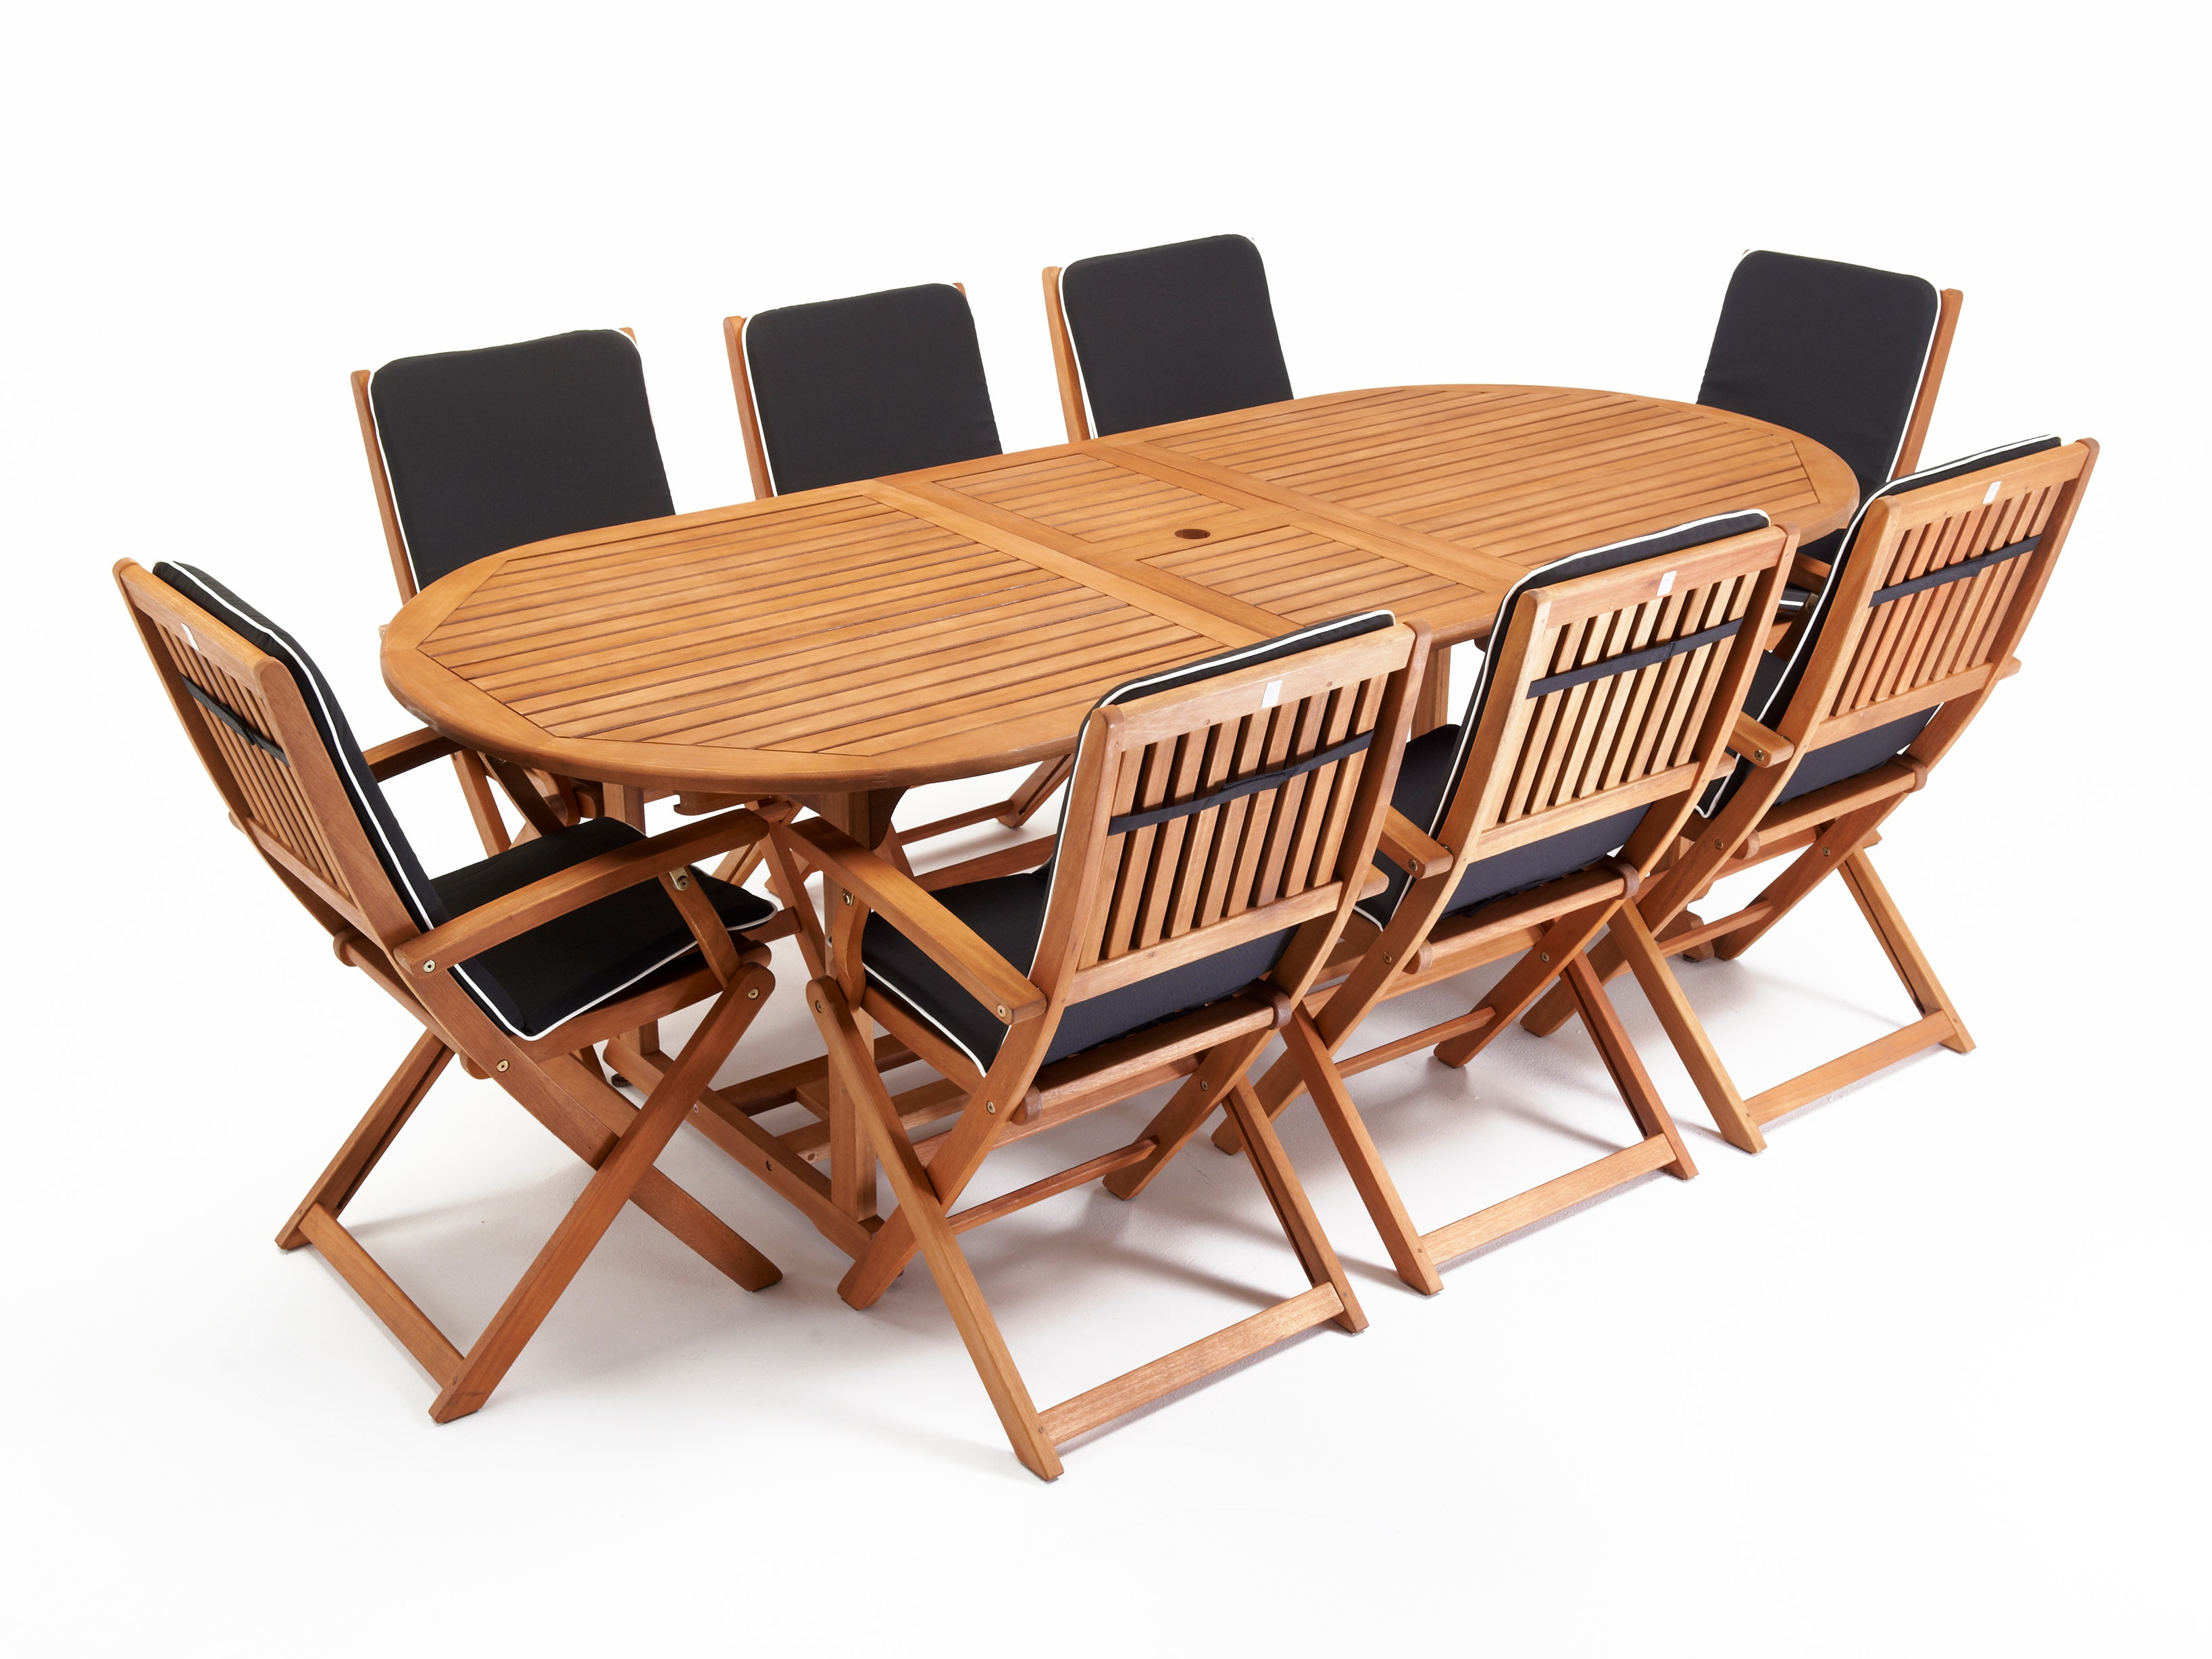 Chatswood Outdoor Dining Set Extending 8-Seater